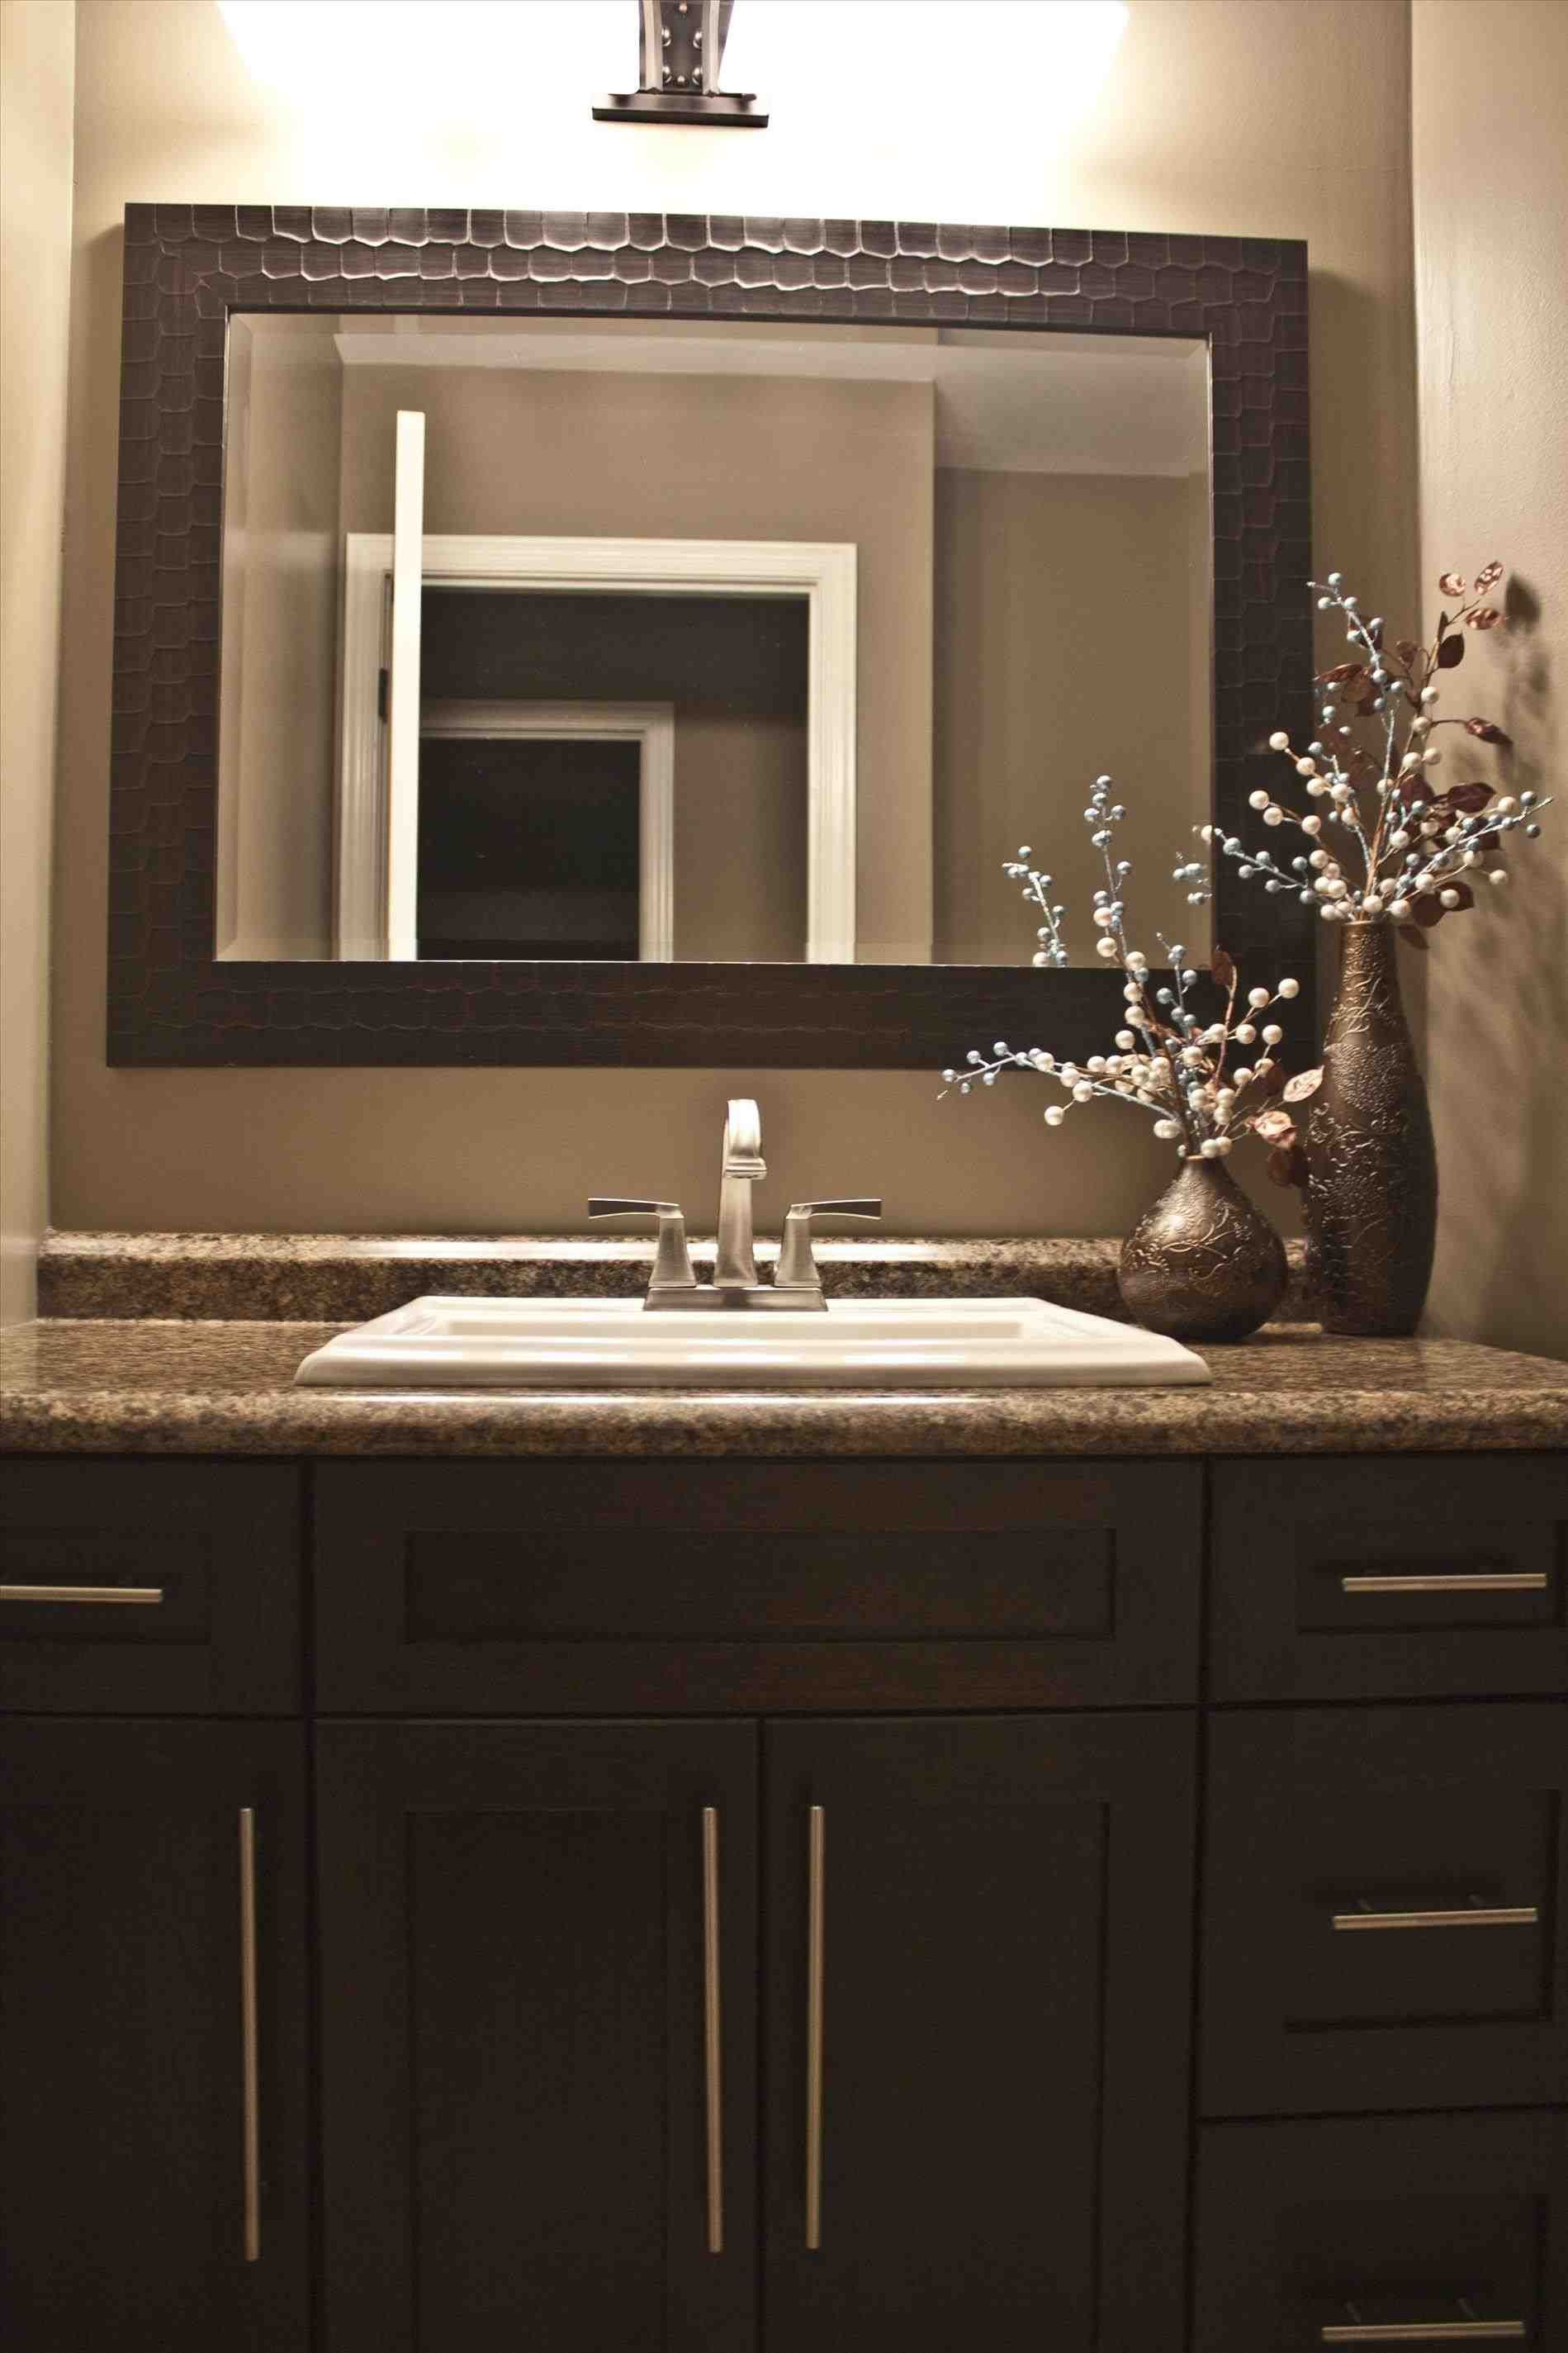 This Brown Painted Bathroom Cabinets Kitchen Kitchen Colors With Dark Brown Cabinets Flatware Utensi Dark Brown Bathroom Brown Bathroom Dark Brown Cabinets